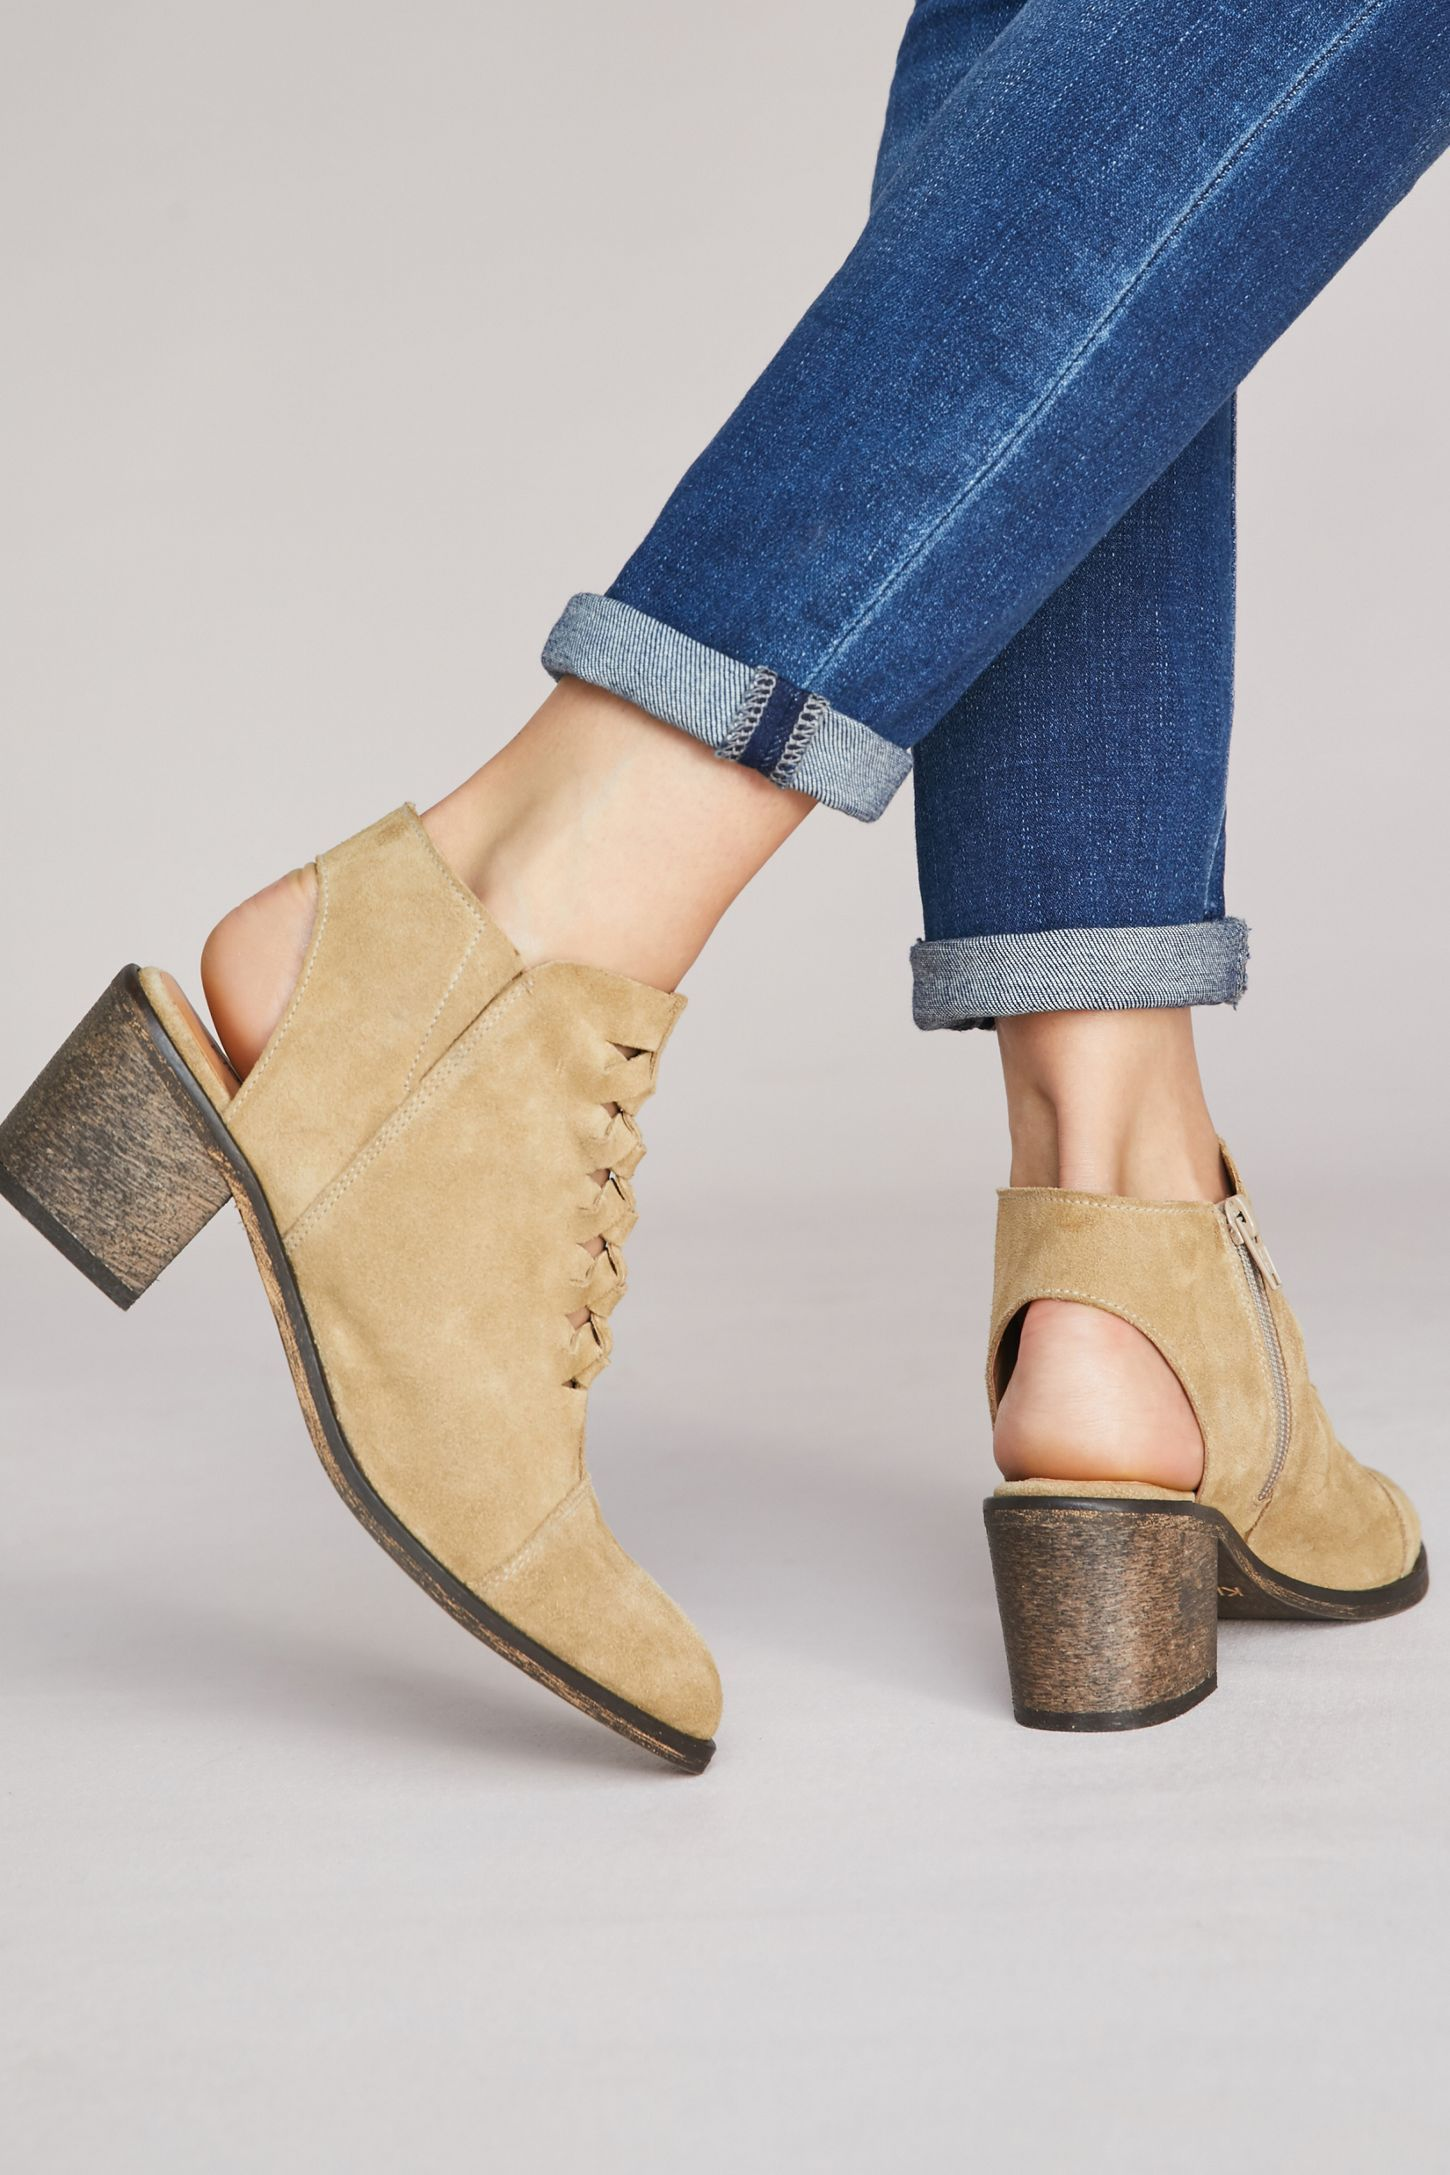 Slide View: 4: Klub Nico Bernita Cutout Booties